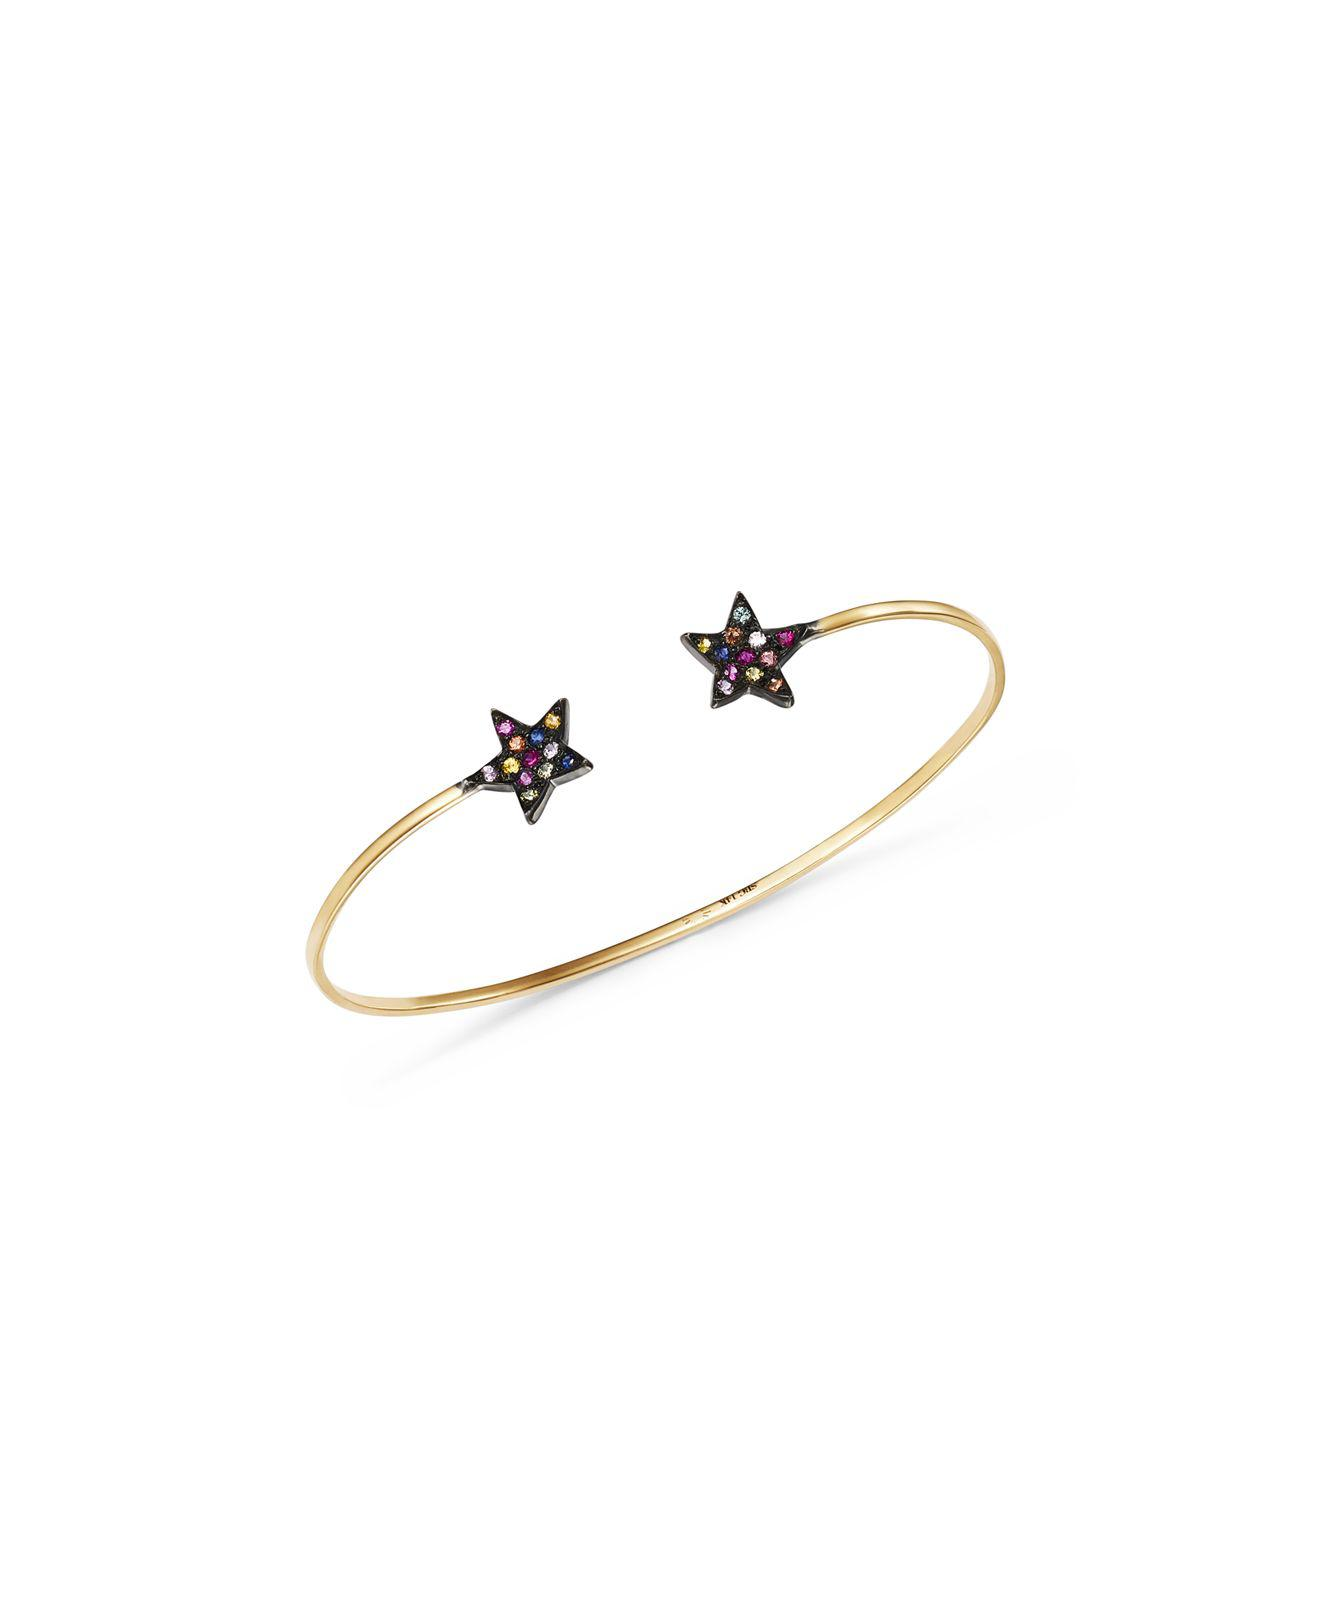 14K Gold and Sapphire Cuff Bracelet She Bee